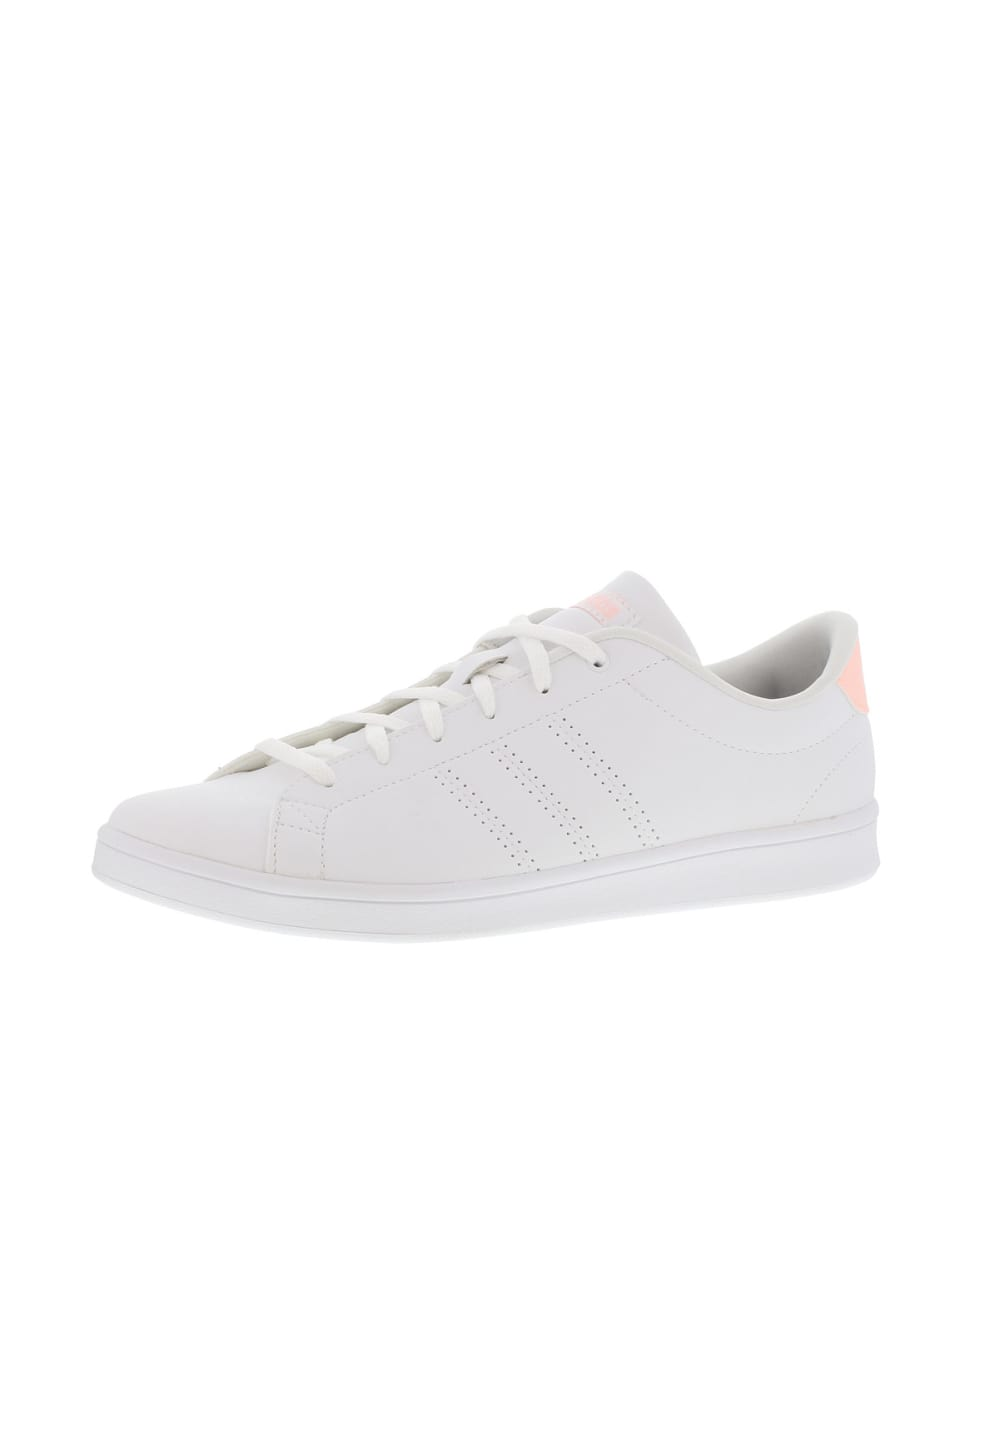 promo code 19952 807b9 Next. -60%. This product is currently out of stock. adidas neo. Advantage  Clean QT - Sneaker for Women